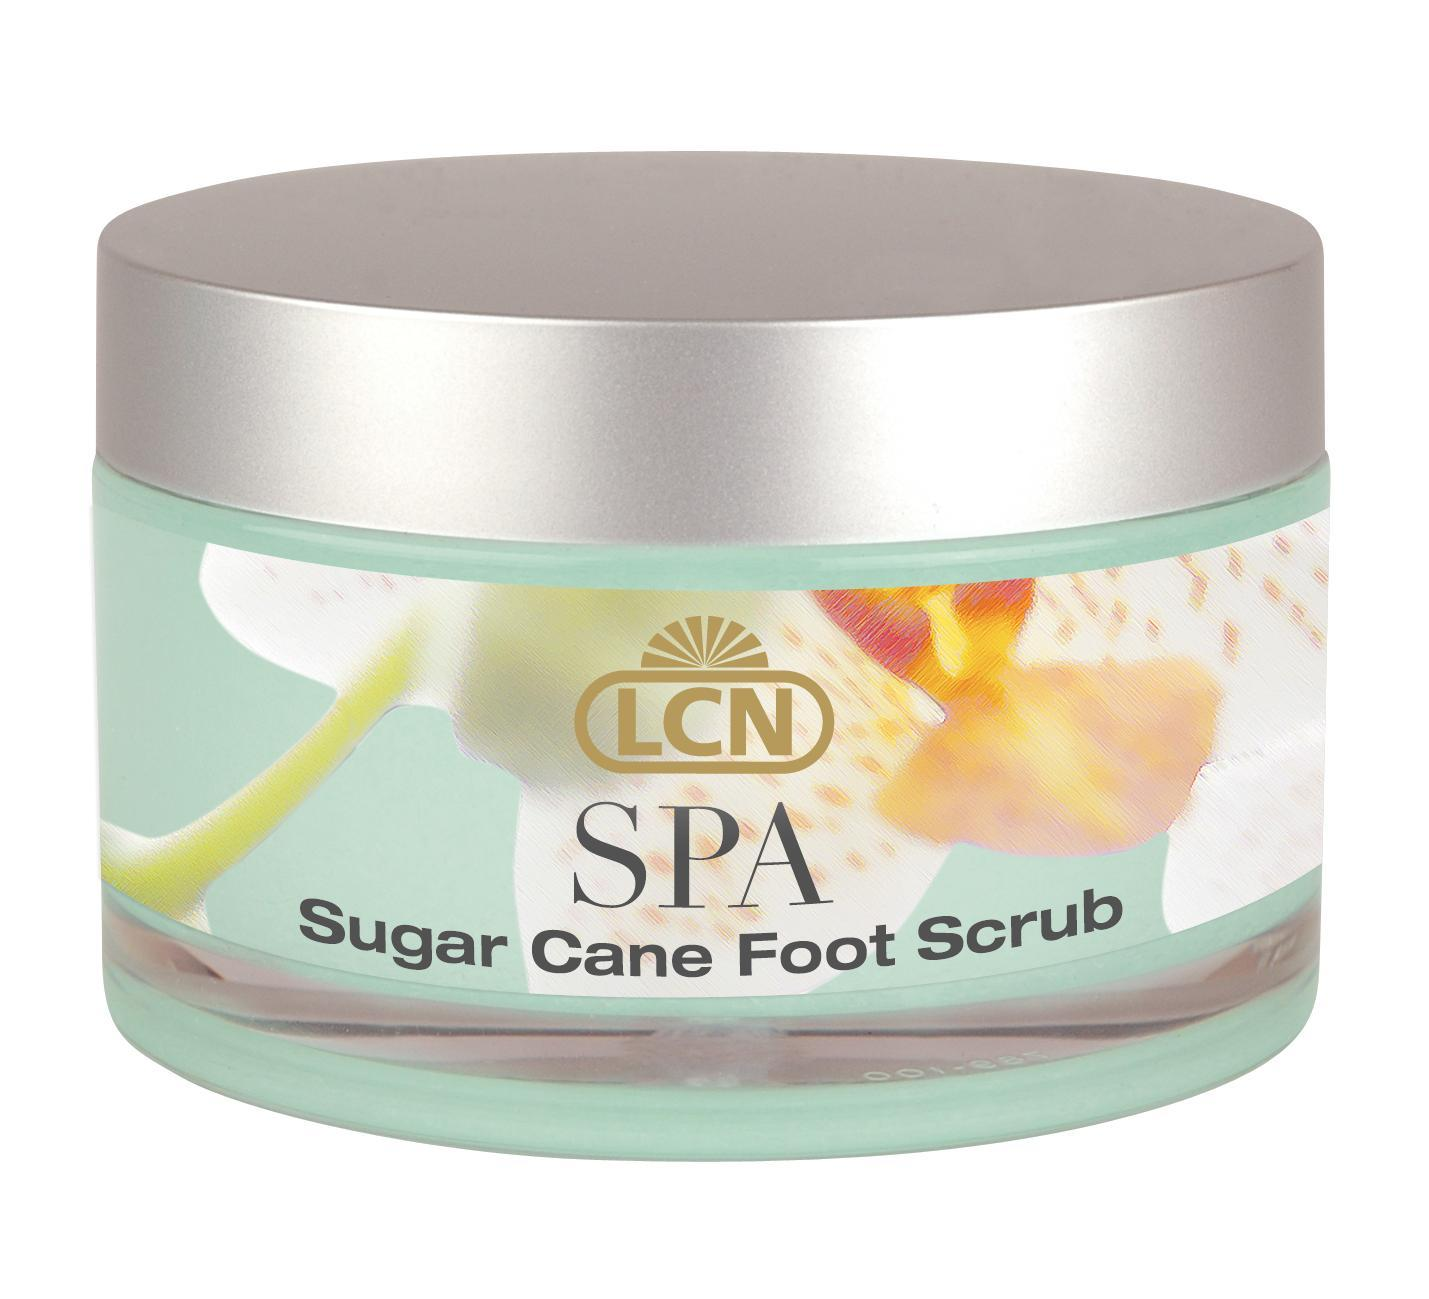 Sugar Cane Foot Scrub, 100ml